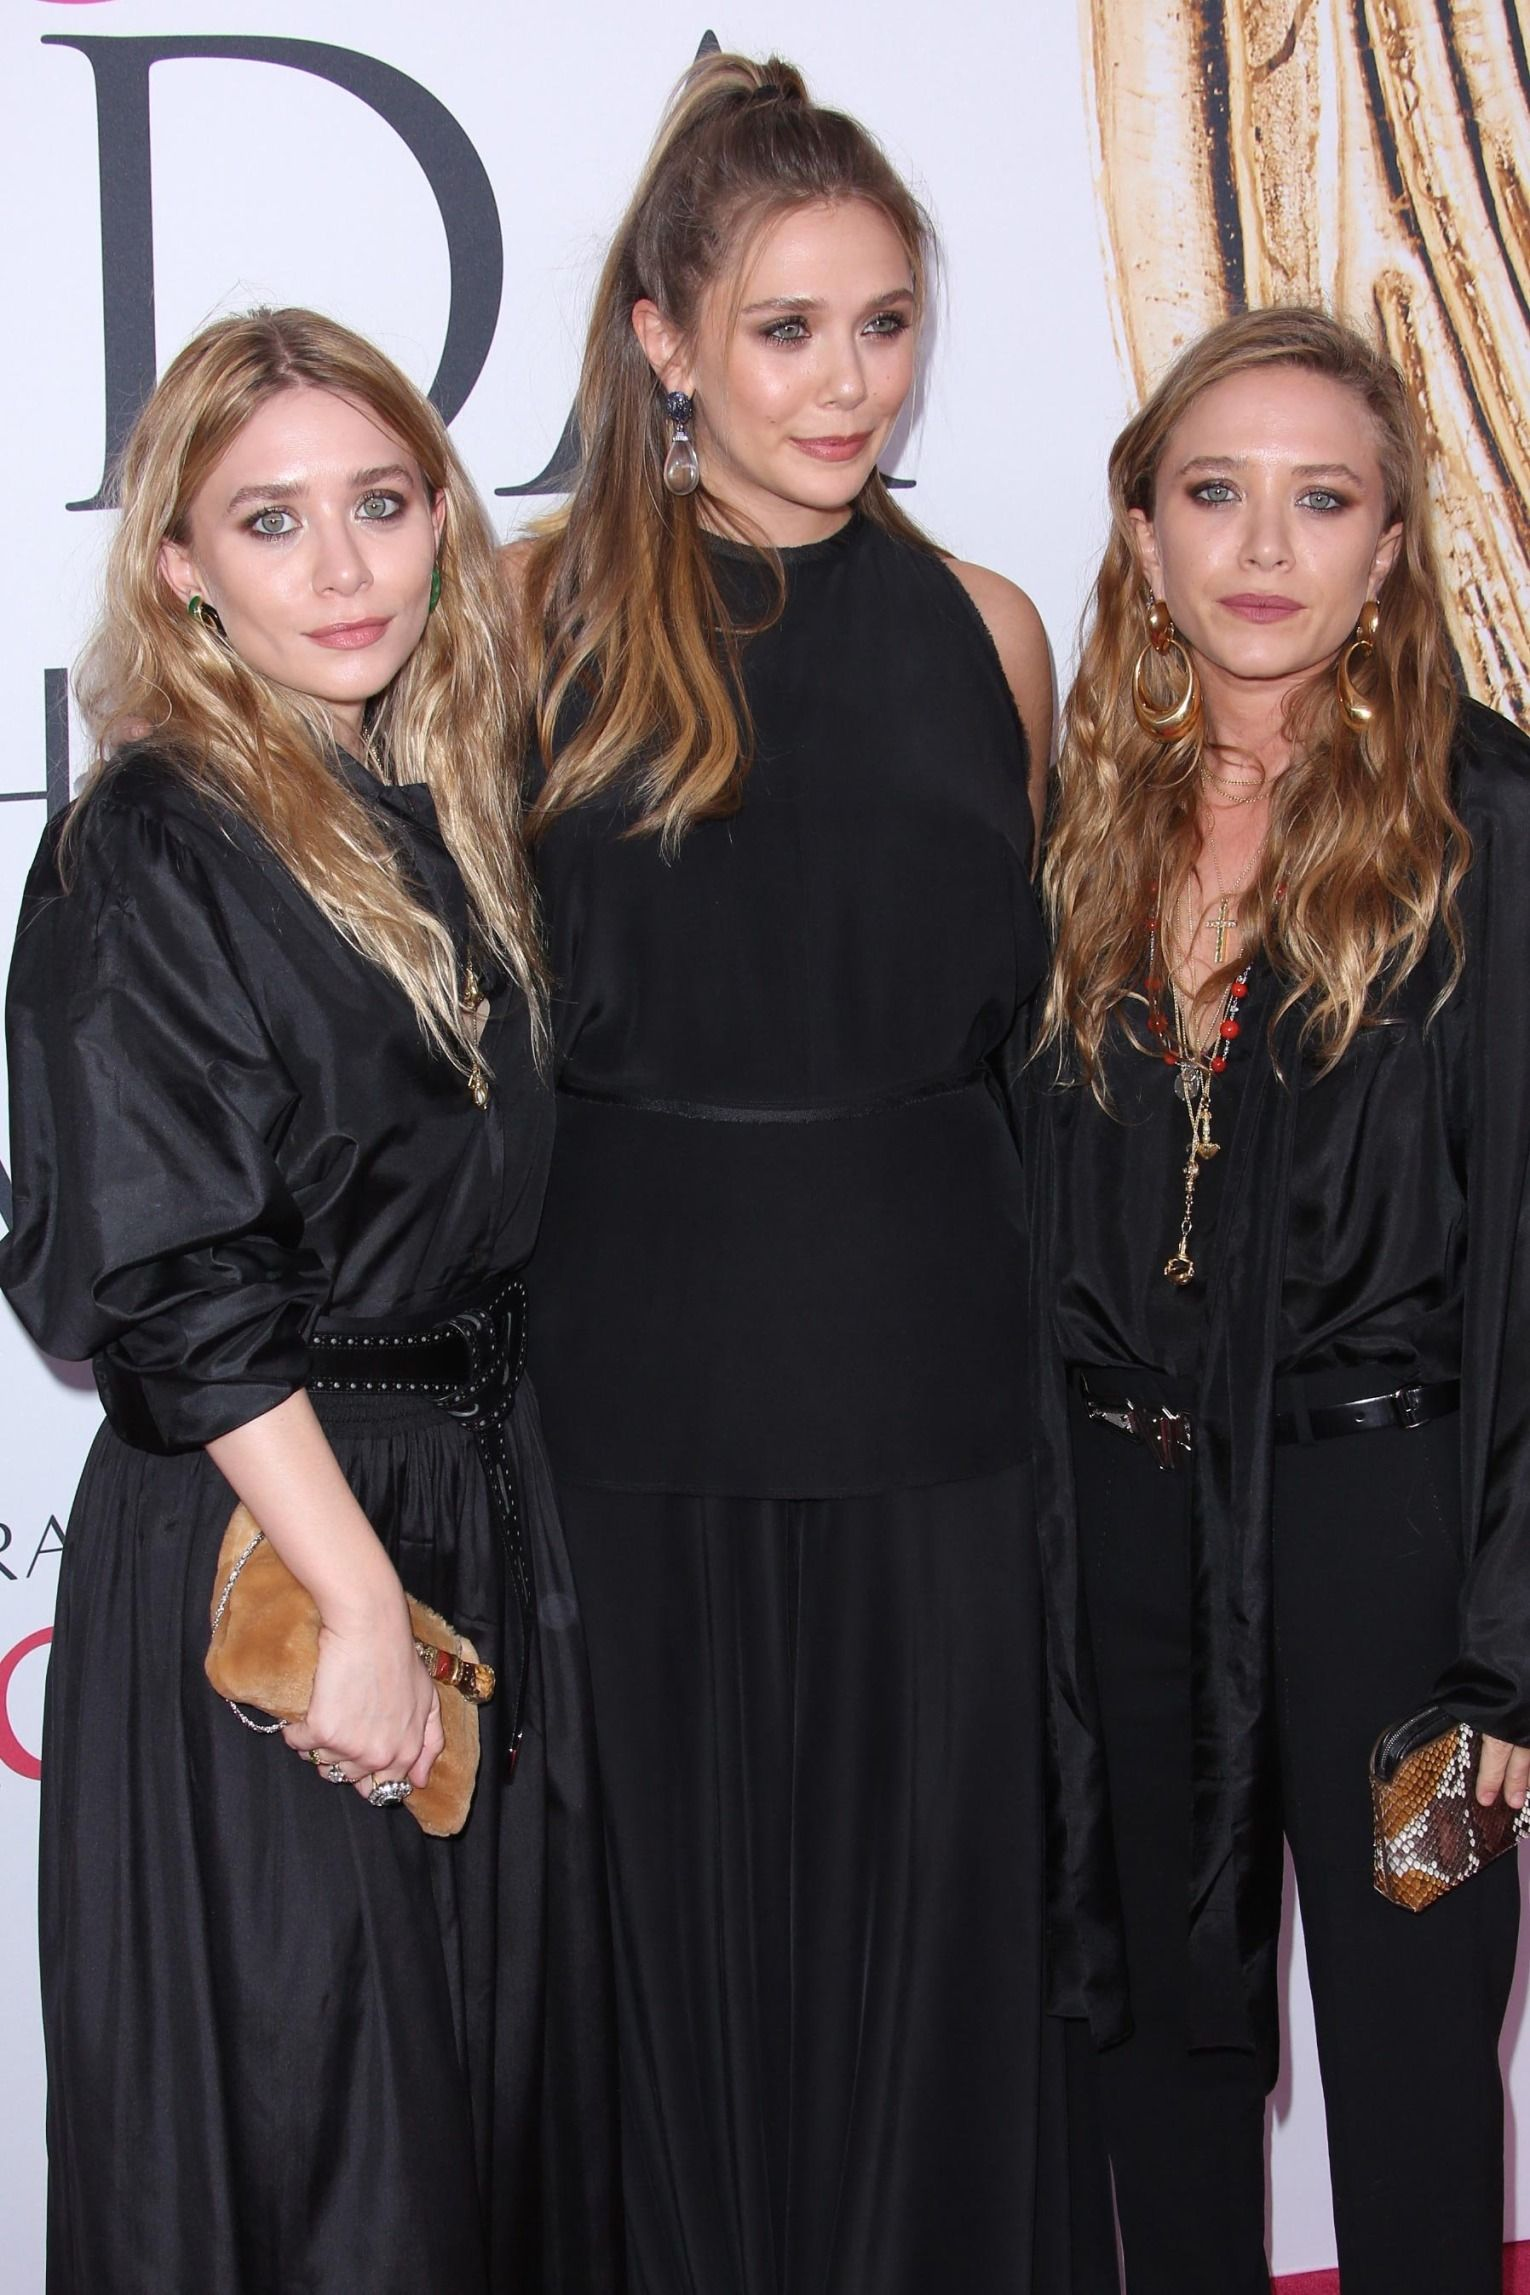 Ashley Olsen, Elizabeth Olsen and Mary-Kate Olsen.